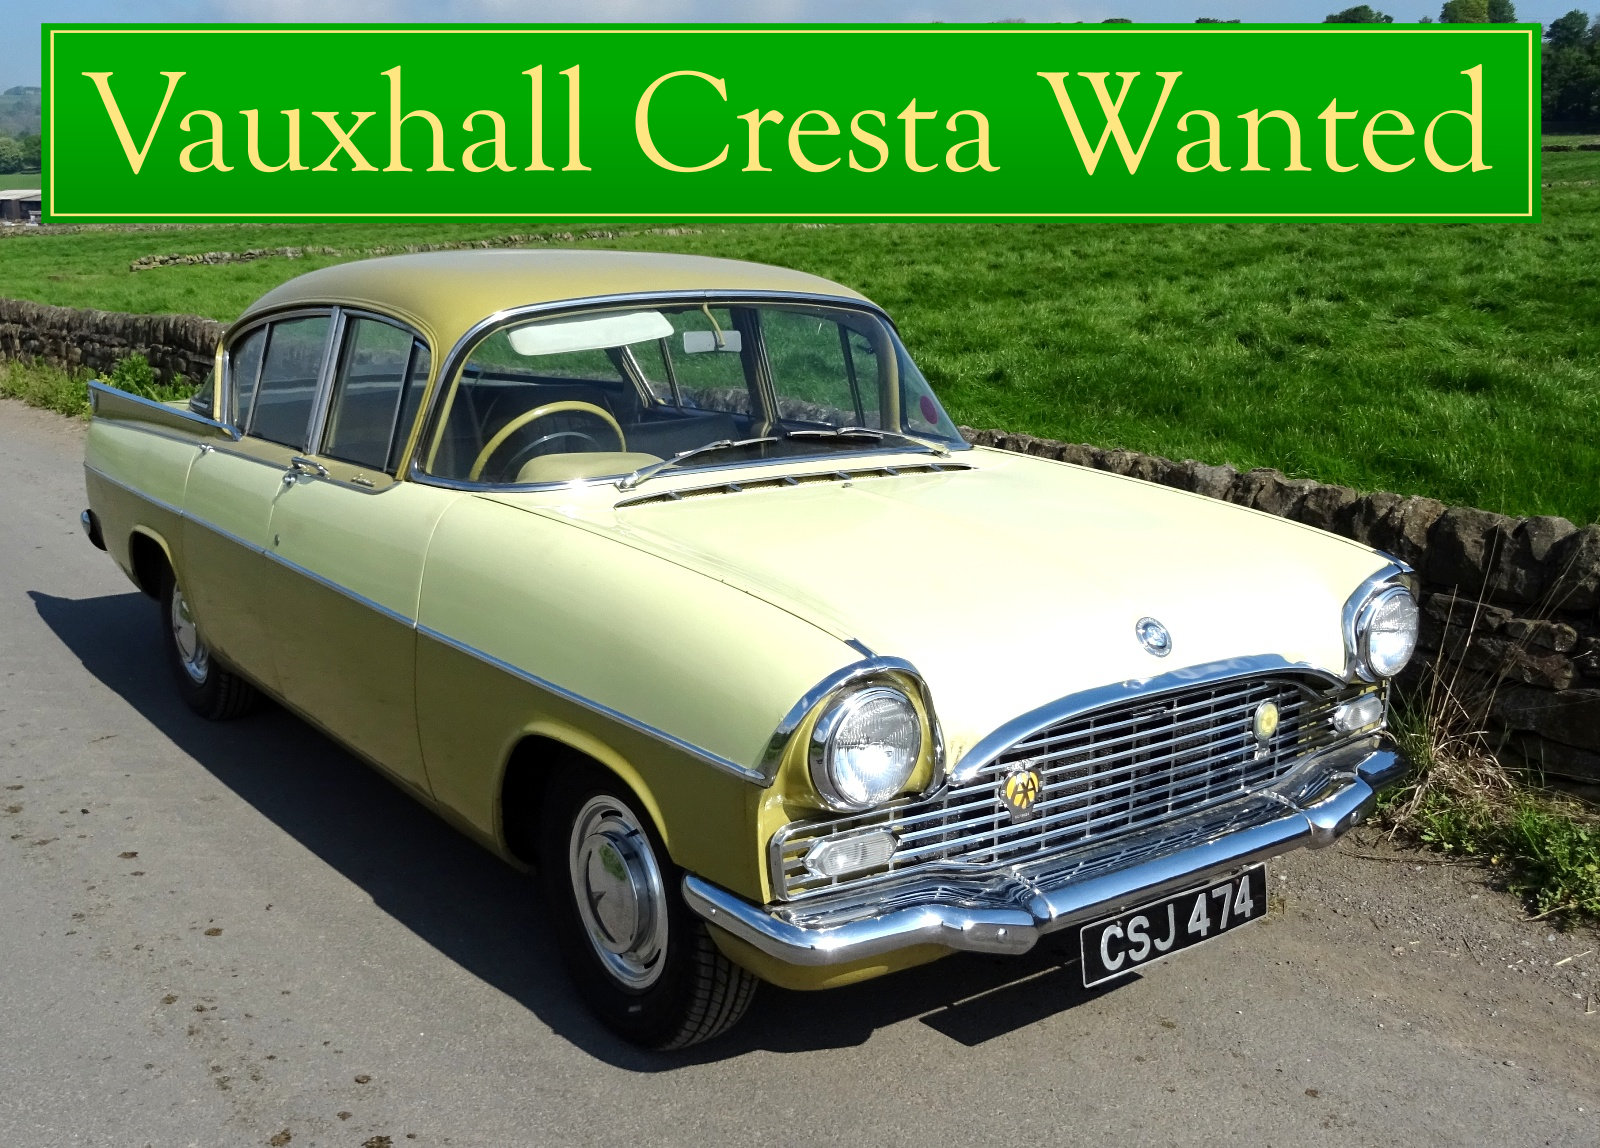 FORD ZEPHYR WANTED, CLASSIC CARS WANTED, IMMEDIATE PAYMENT Wanted (picture 5 of 6)